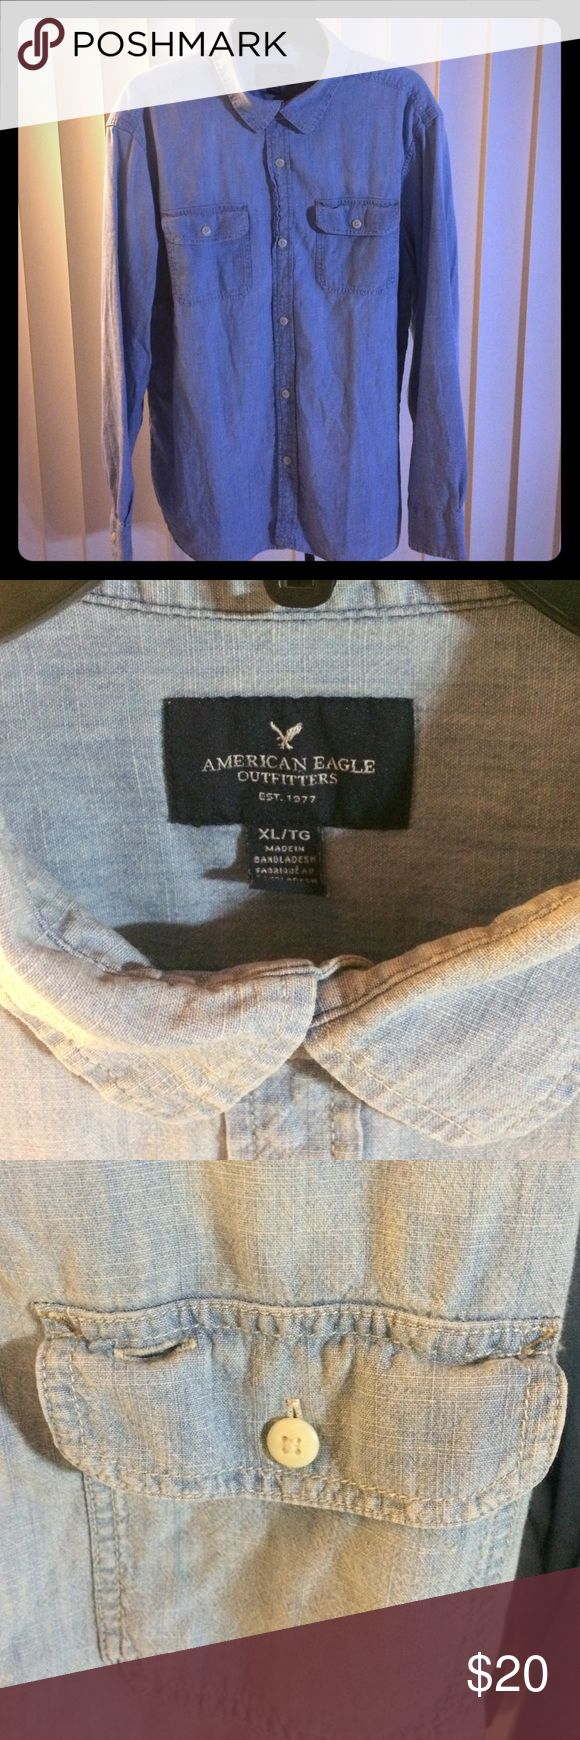 Light Denim Button Up American Eagle Men's size X-large. Used, thin denim shirt. American Eagle Outfitters Shirts Polos